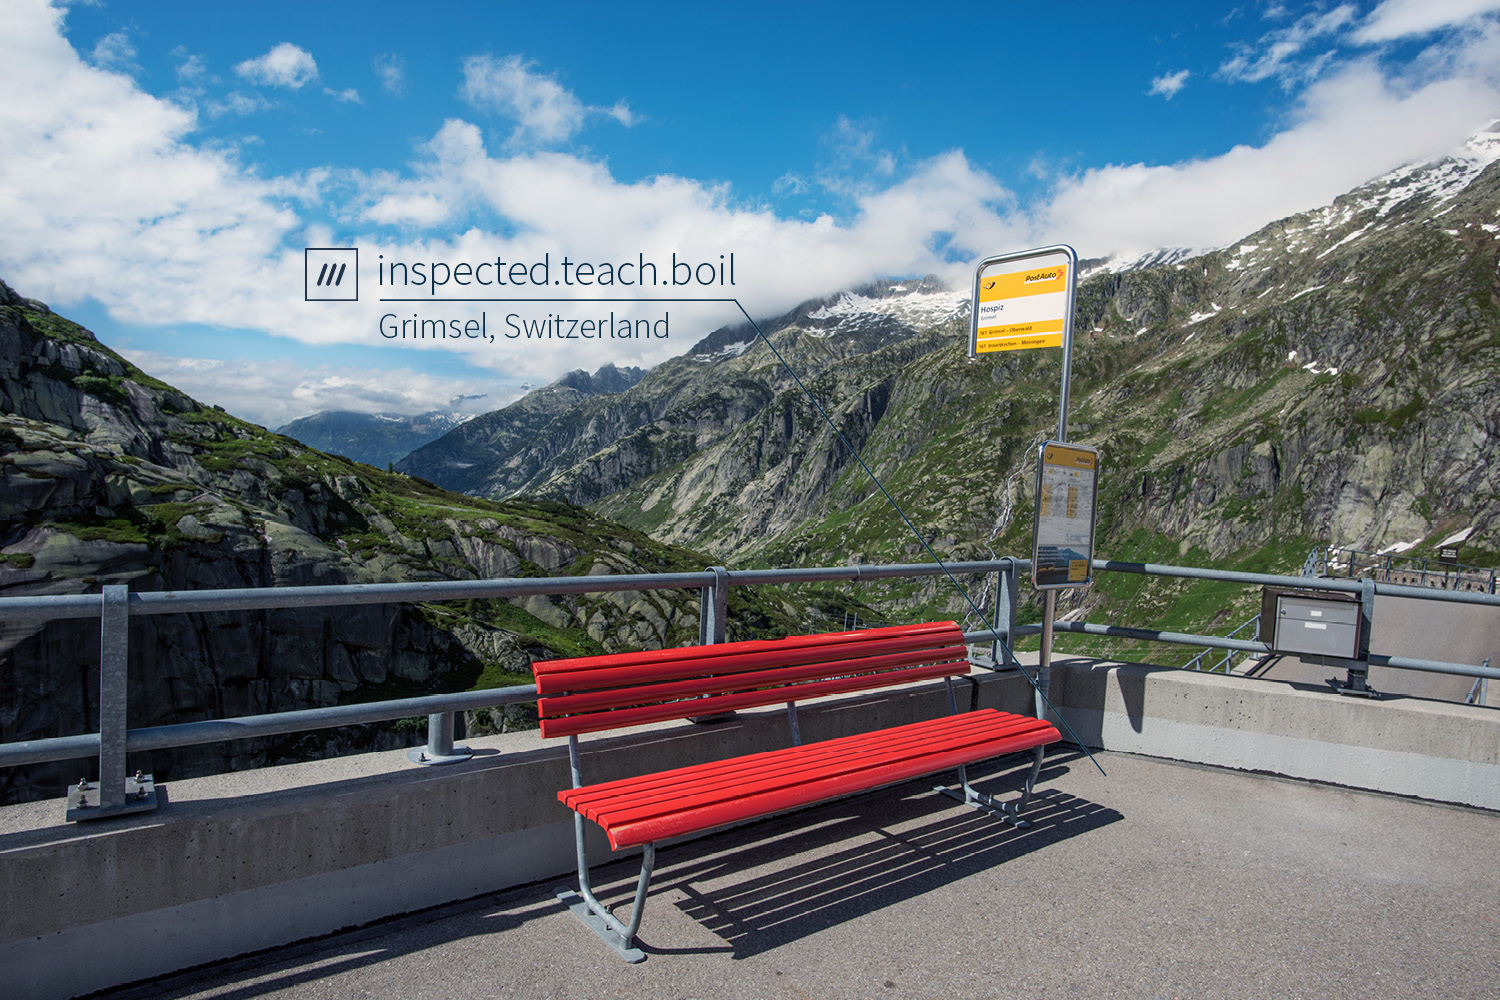 viewing platform with bench looking at mountainous landscape at 3 word address inspected.teach.boil